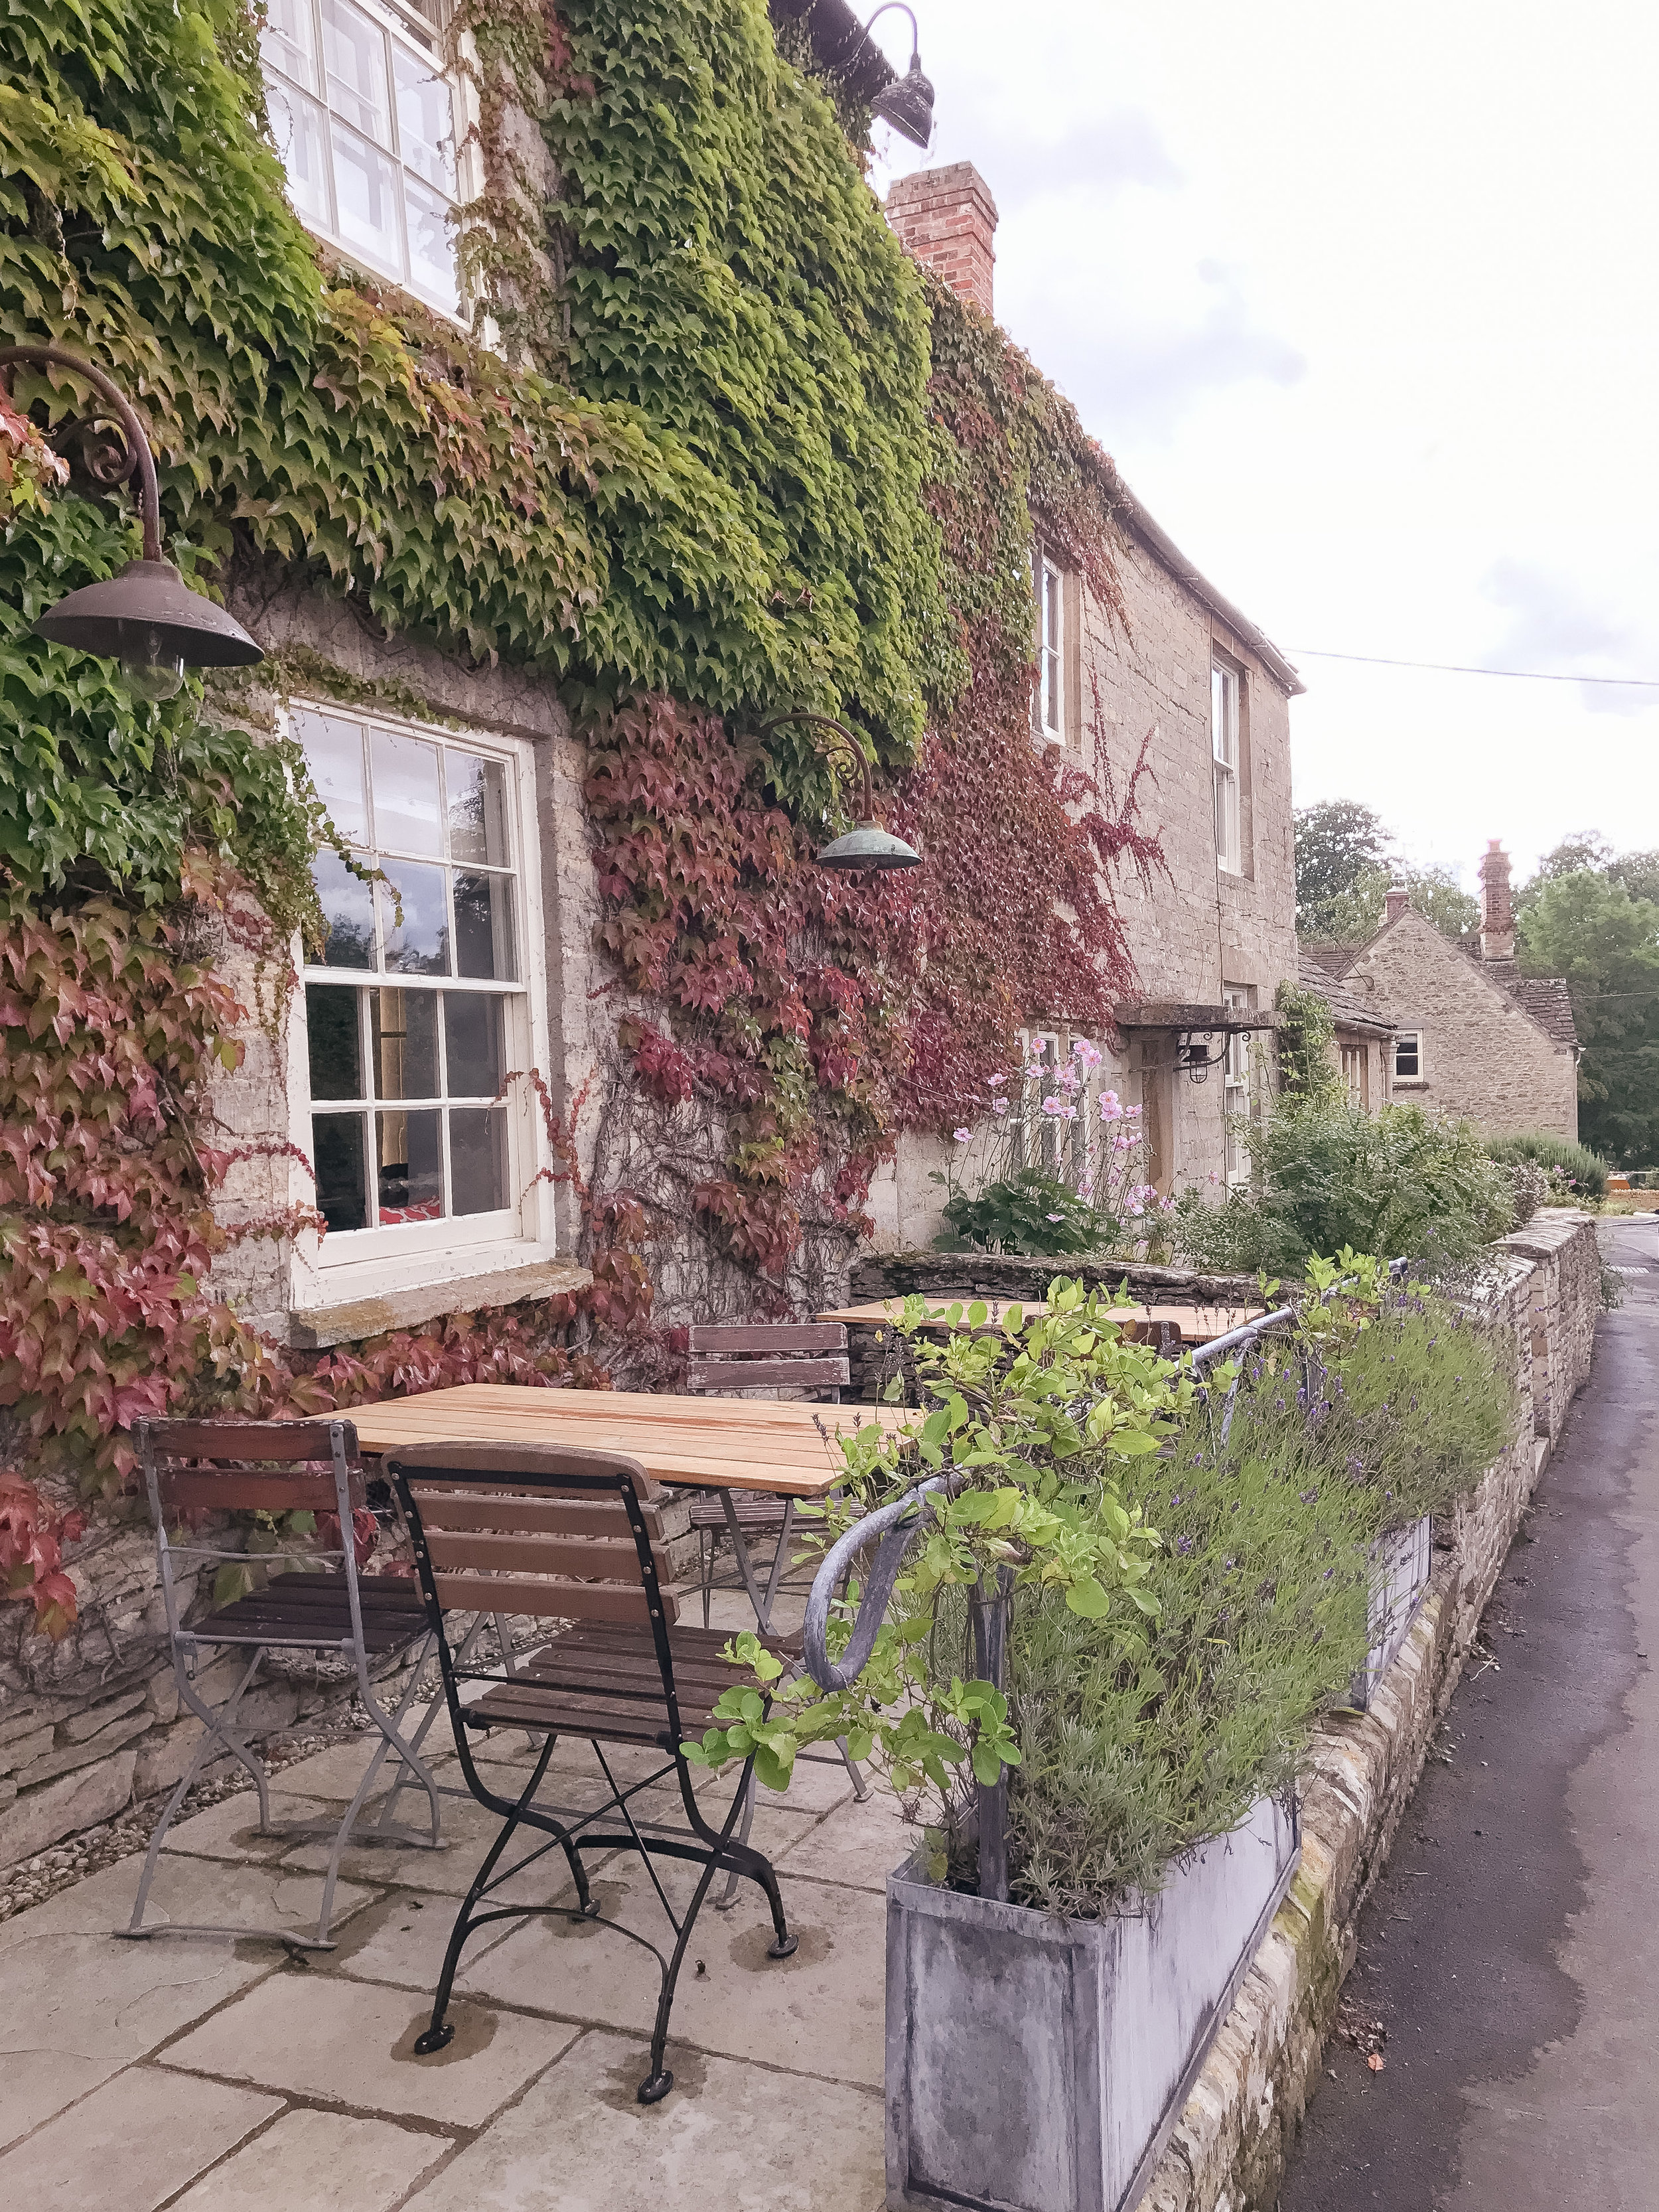 coln-england-cotswolds